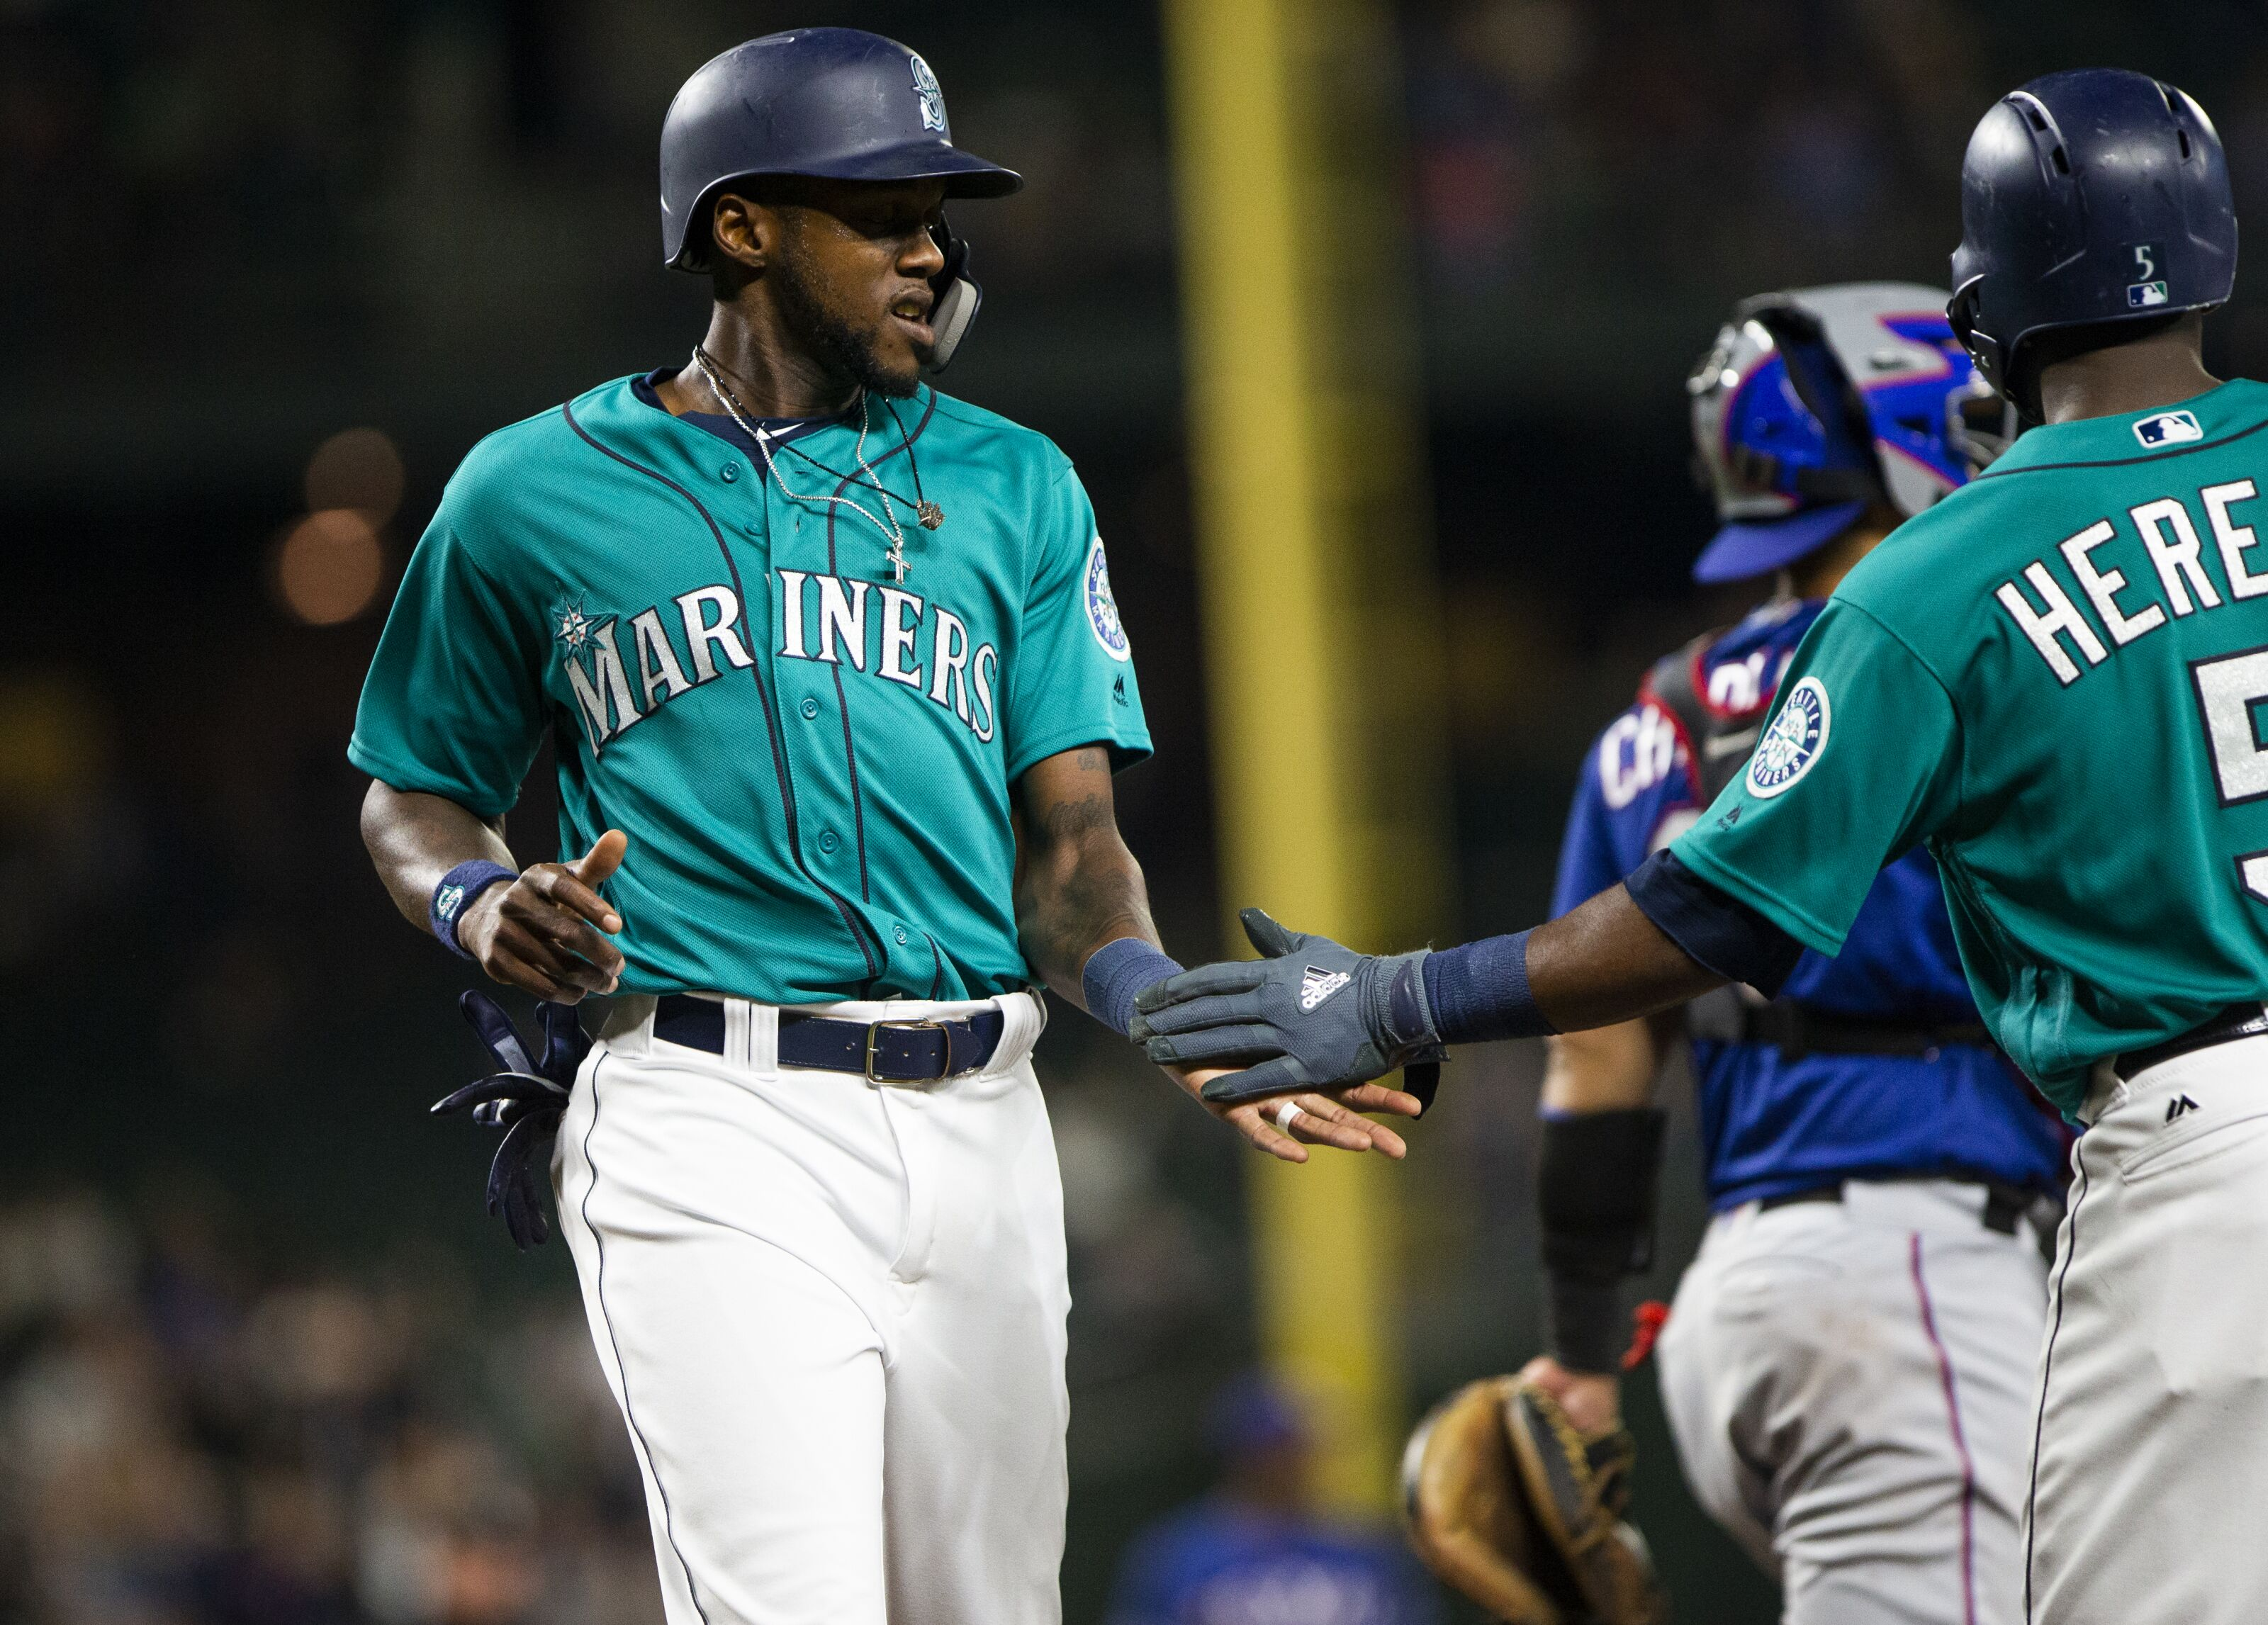 Seattle Mariners: Sign or Decline — Cameron Maybin